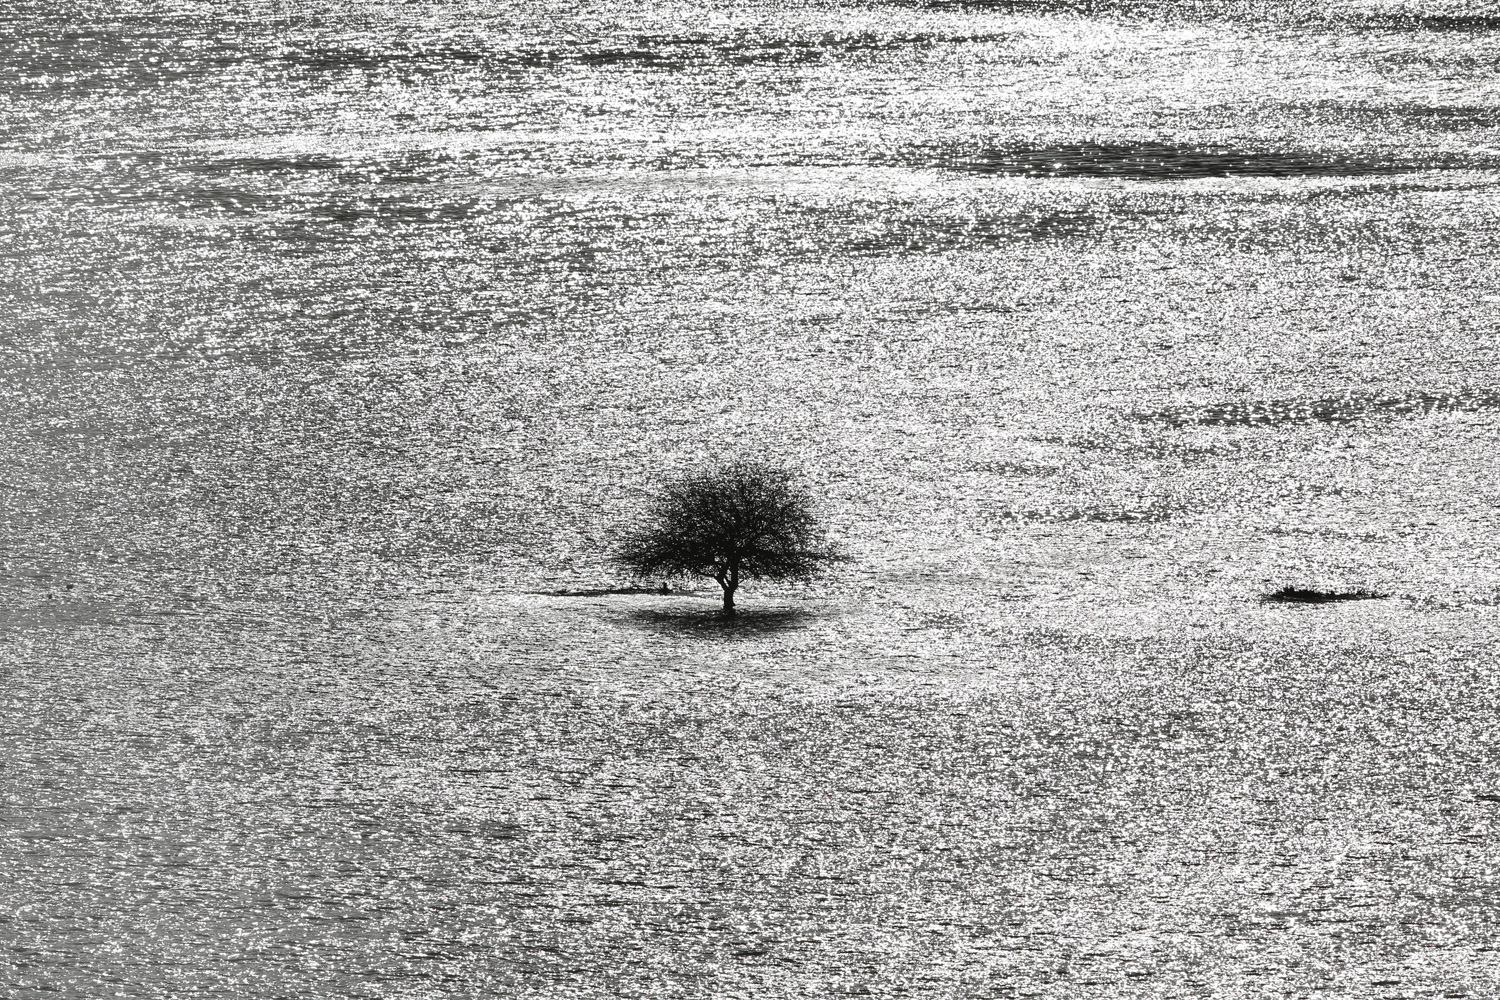 Jan. 6, 2014. A lone tree stands in flood water from the river Arun near Arundel, England.